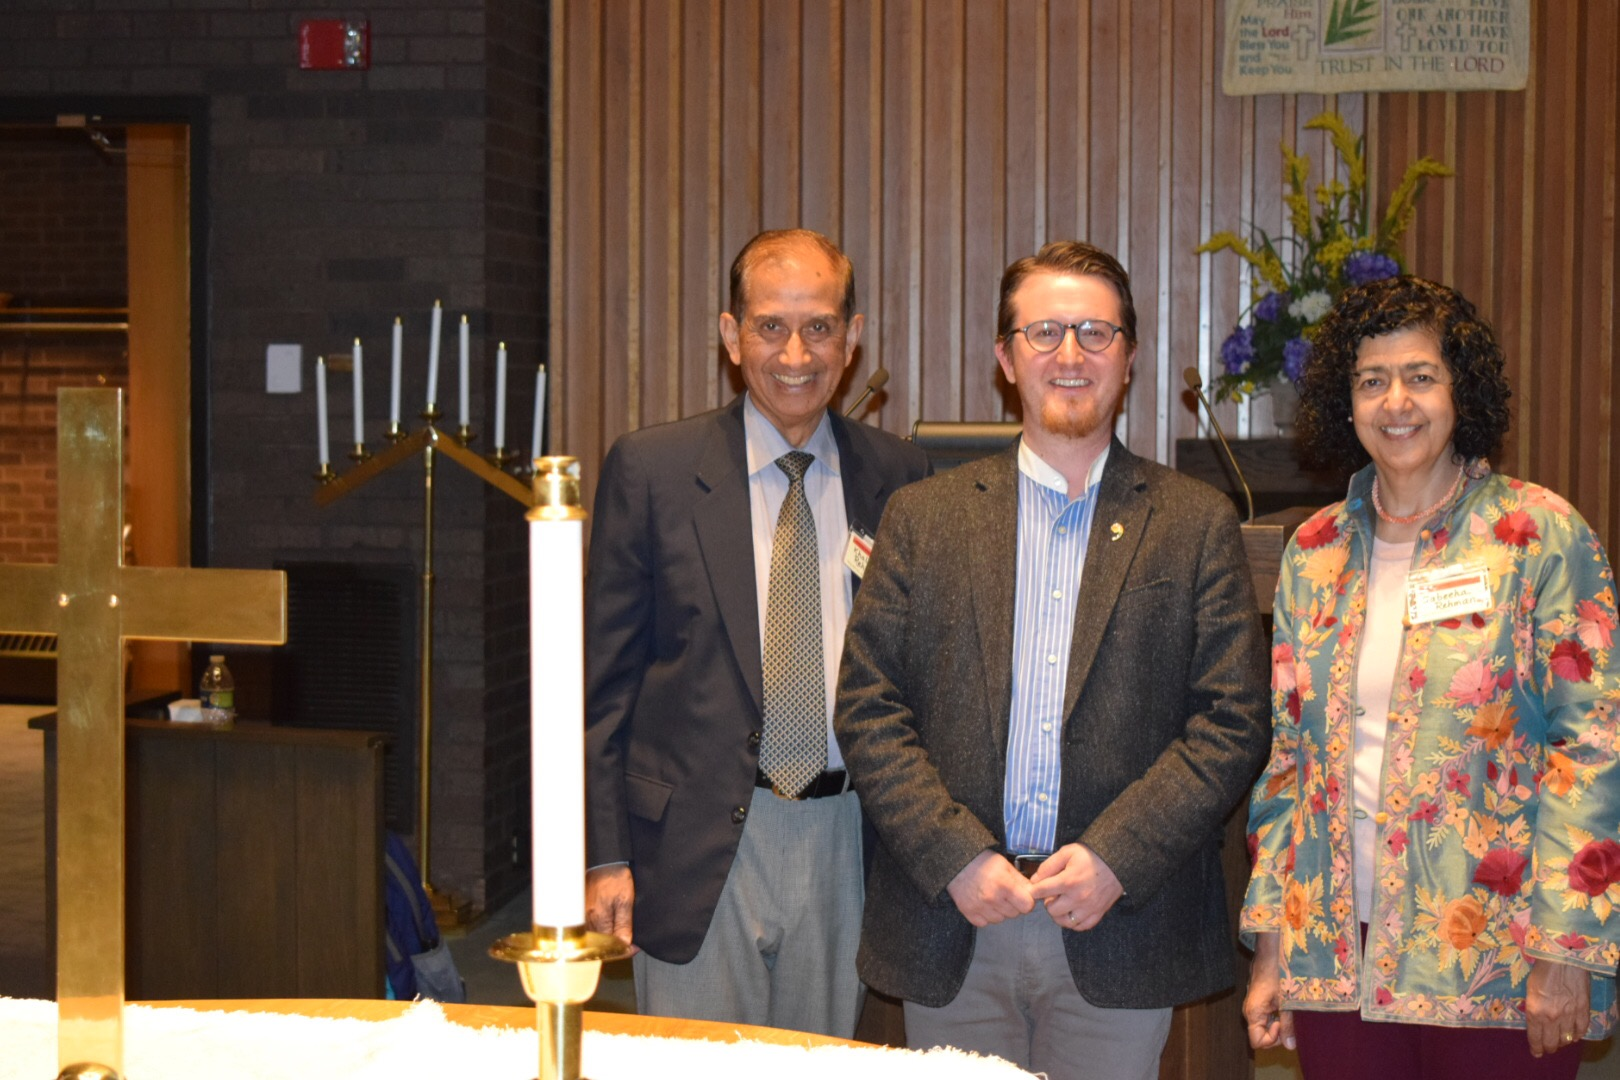 With Rev. Jesse Tanner